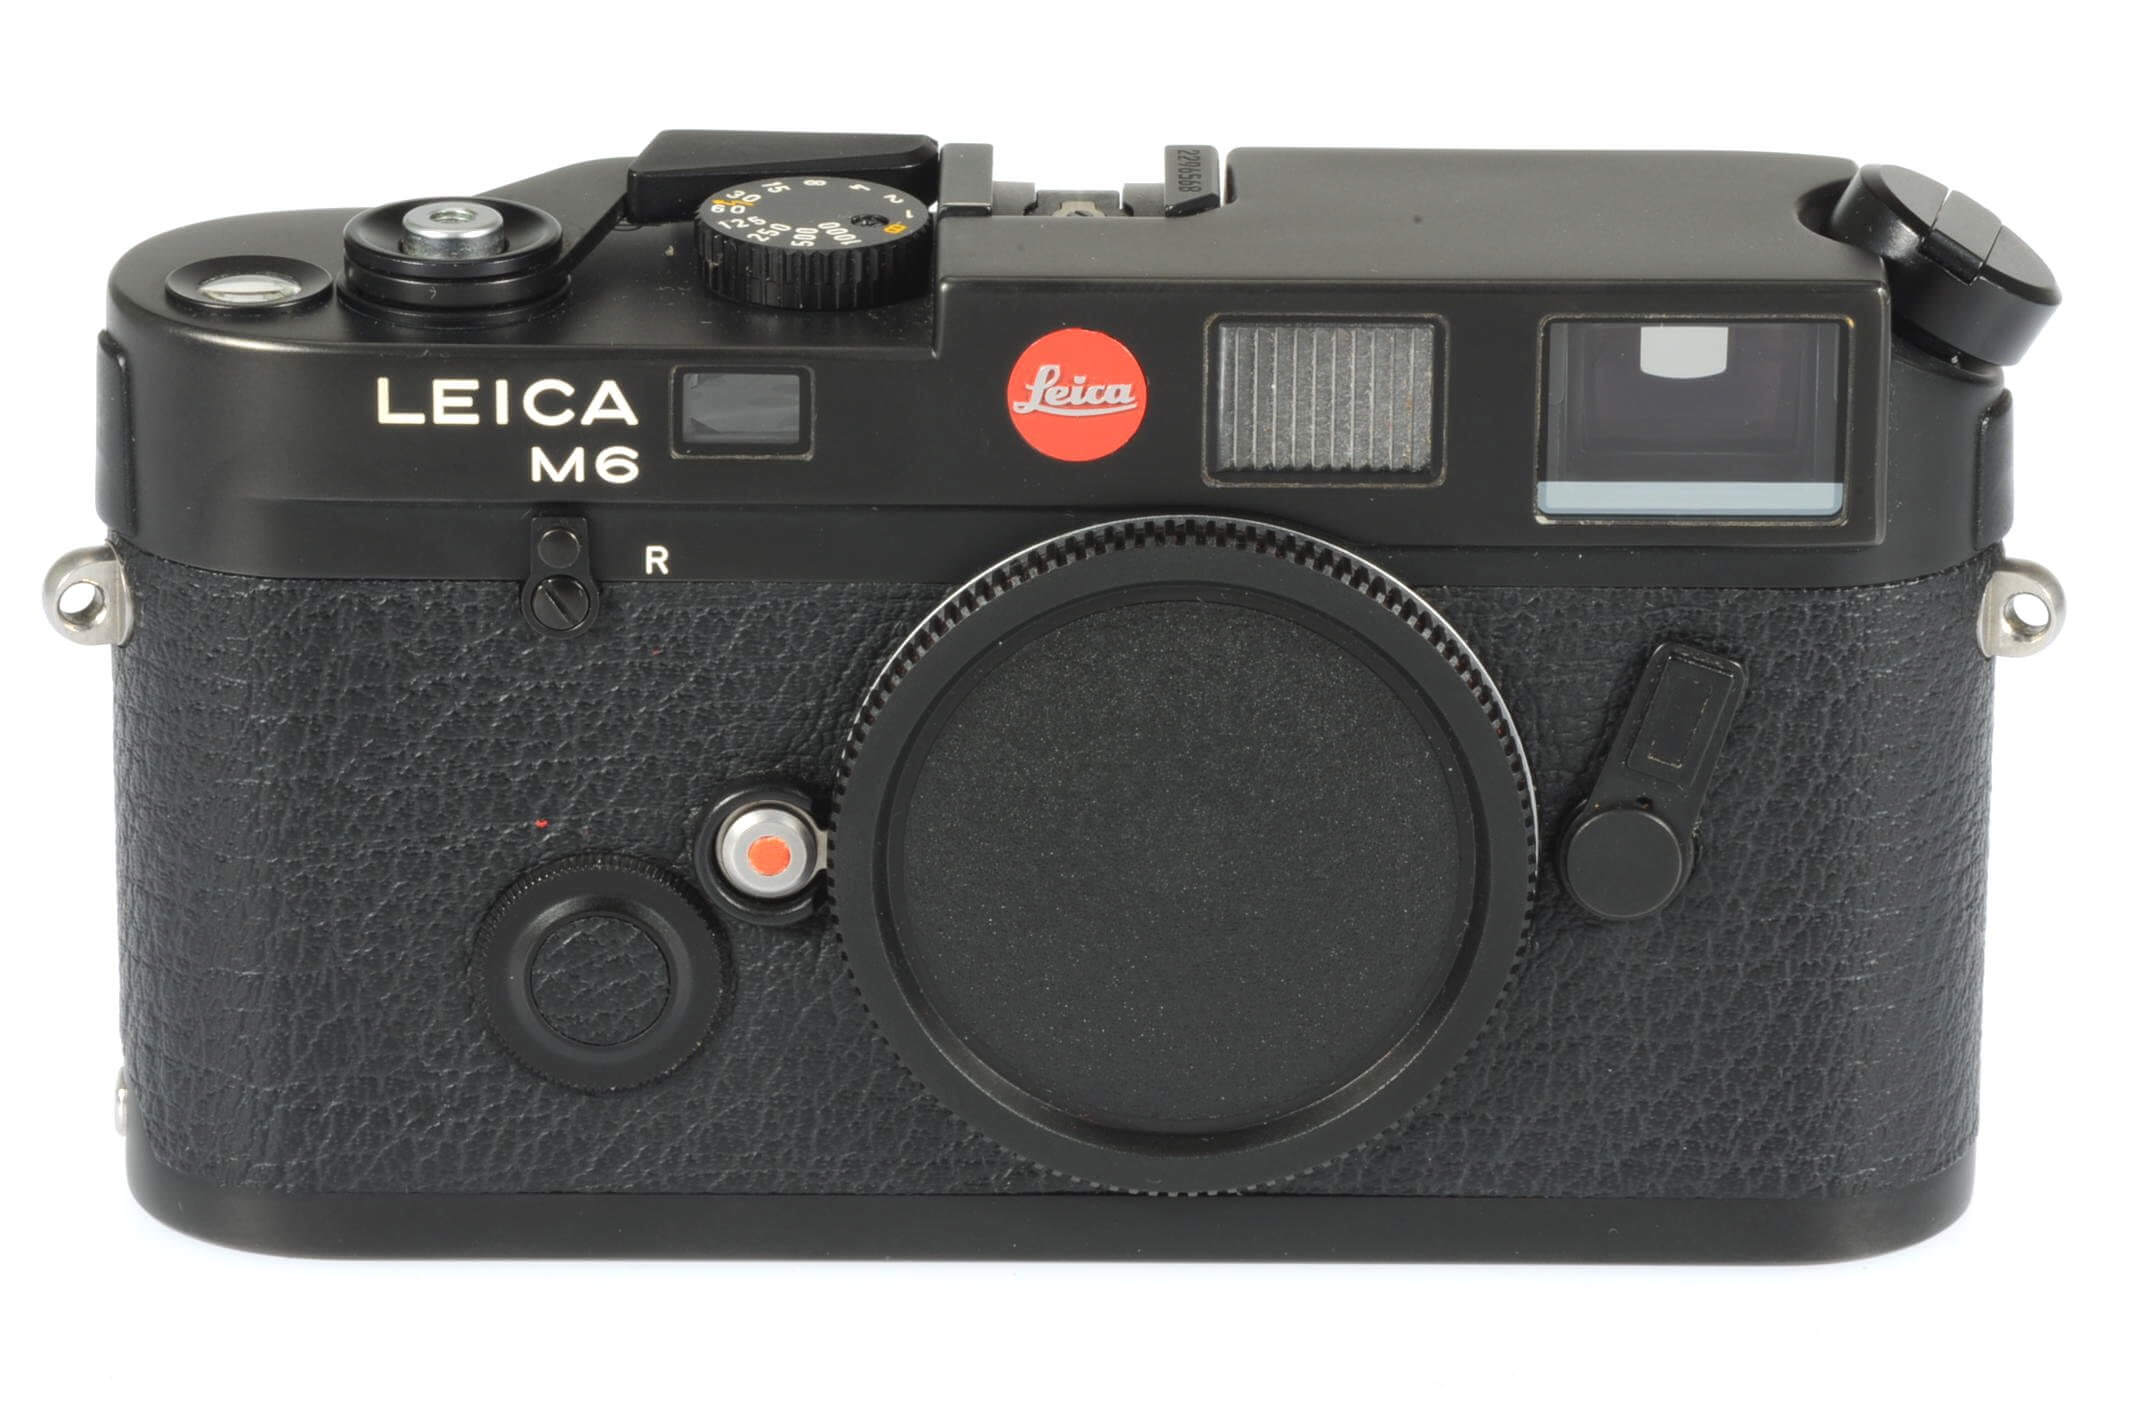 Leica M6 0.72 body, late Solms version, serviced, almost mint!